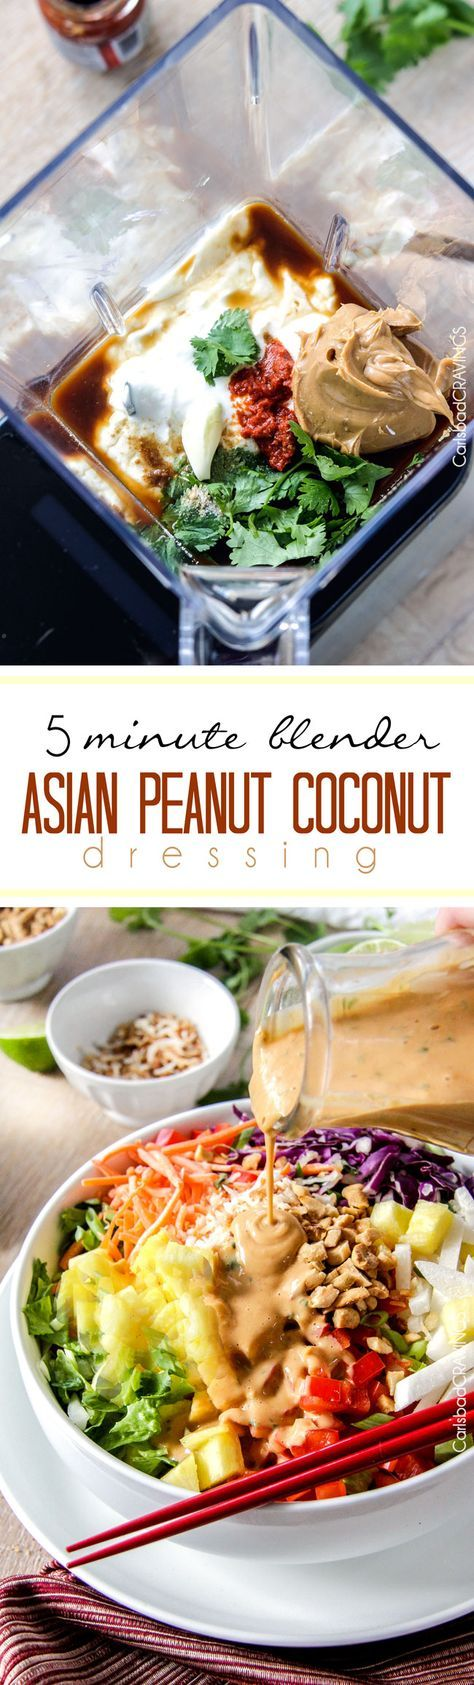 5 Minute Blender Asian Peanut Coconut Dressing is so ridiculously delicious you will want to put it on everything! #blendtec #giveaway #dressing #salad #peanut #Asian